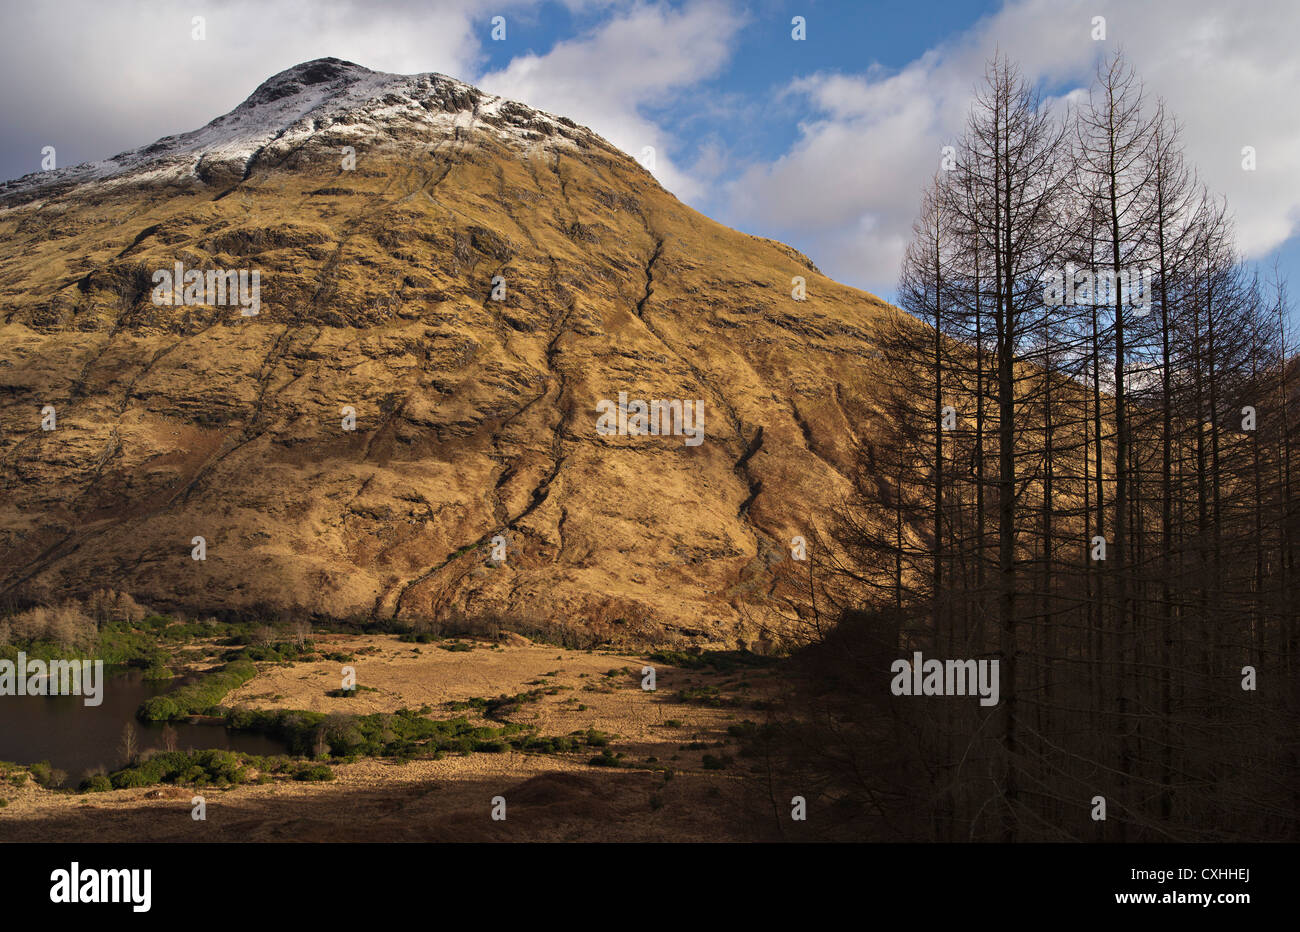 Snow-capped Stobh Dubh ('The Black Peak') in Glen Etive, Scottish Highlands, UK - Stock Image